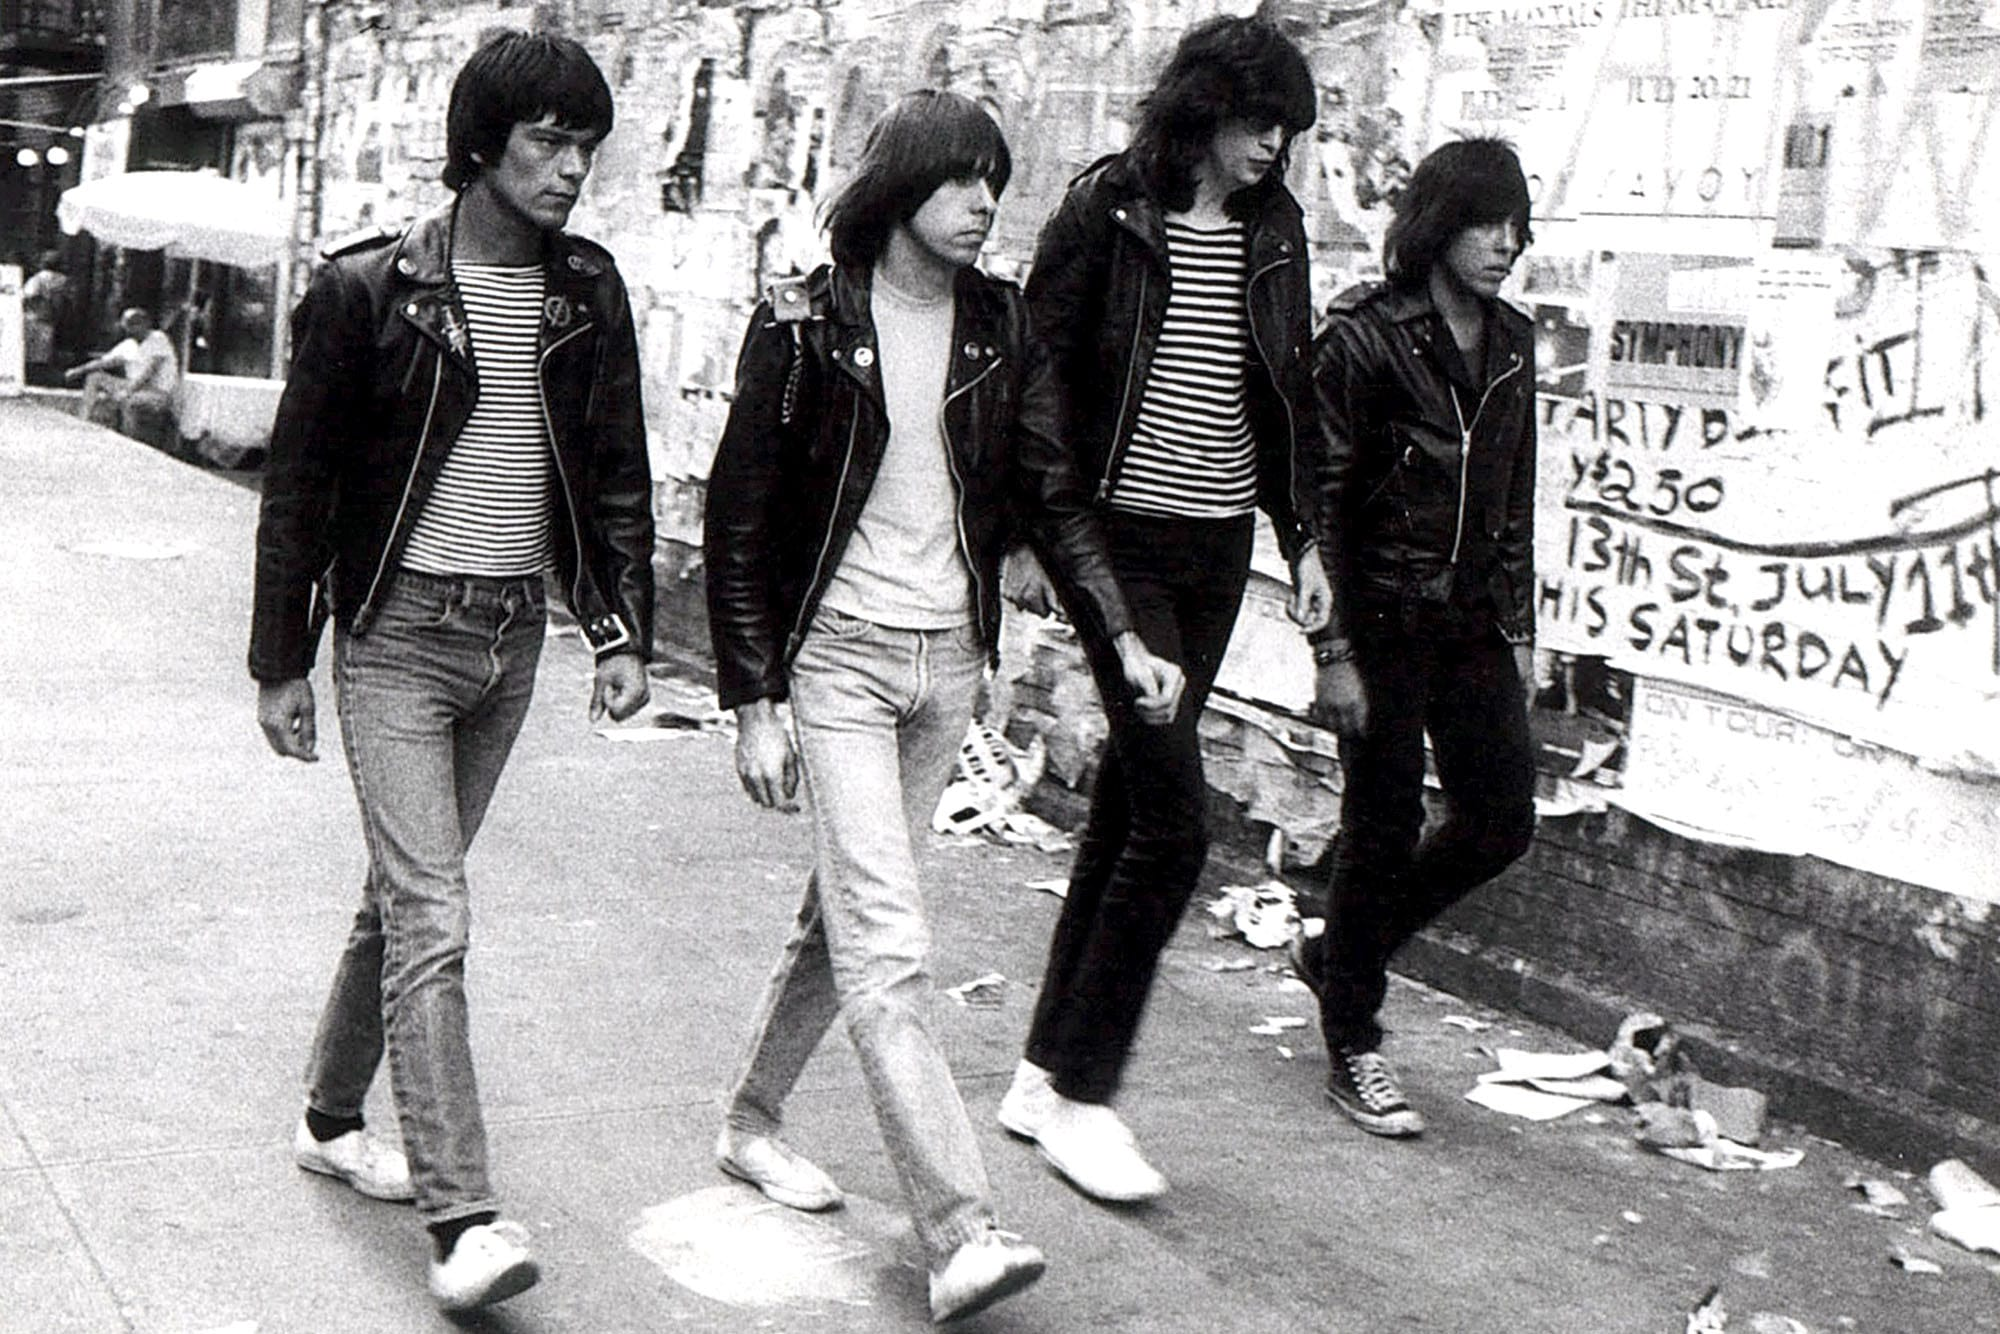 How to style jeans The Ramones rock n roll archetype